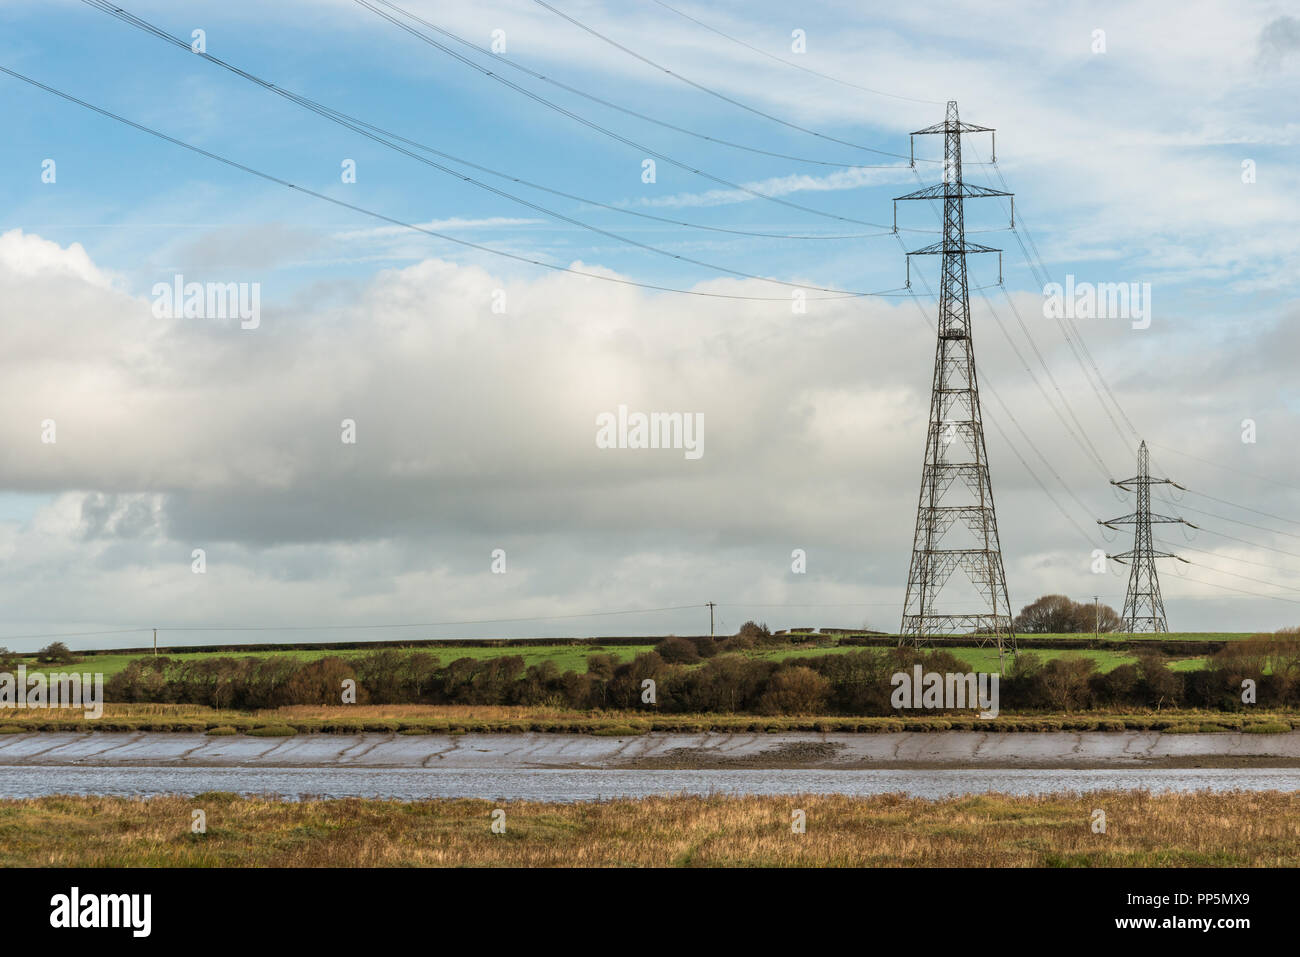 Two pylons on the side of the River Wyre in Lancashire, England, UK with high voltage cables crossing the water in the countryside. - Stock Image